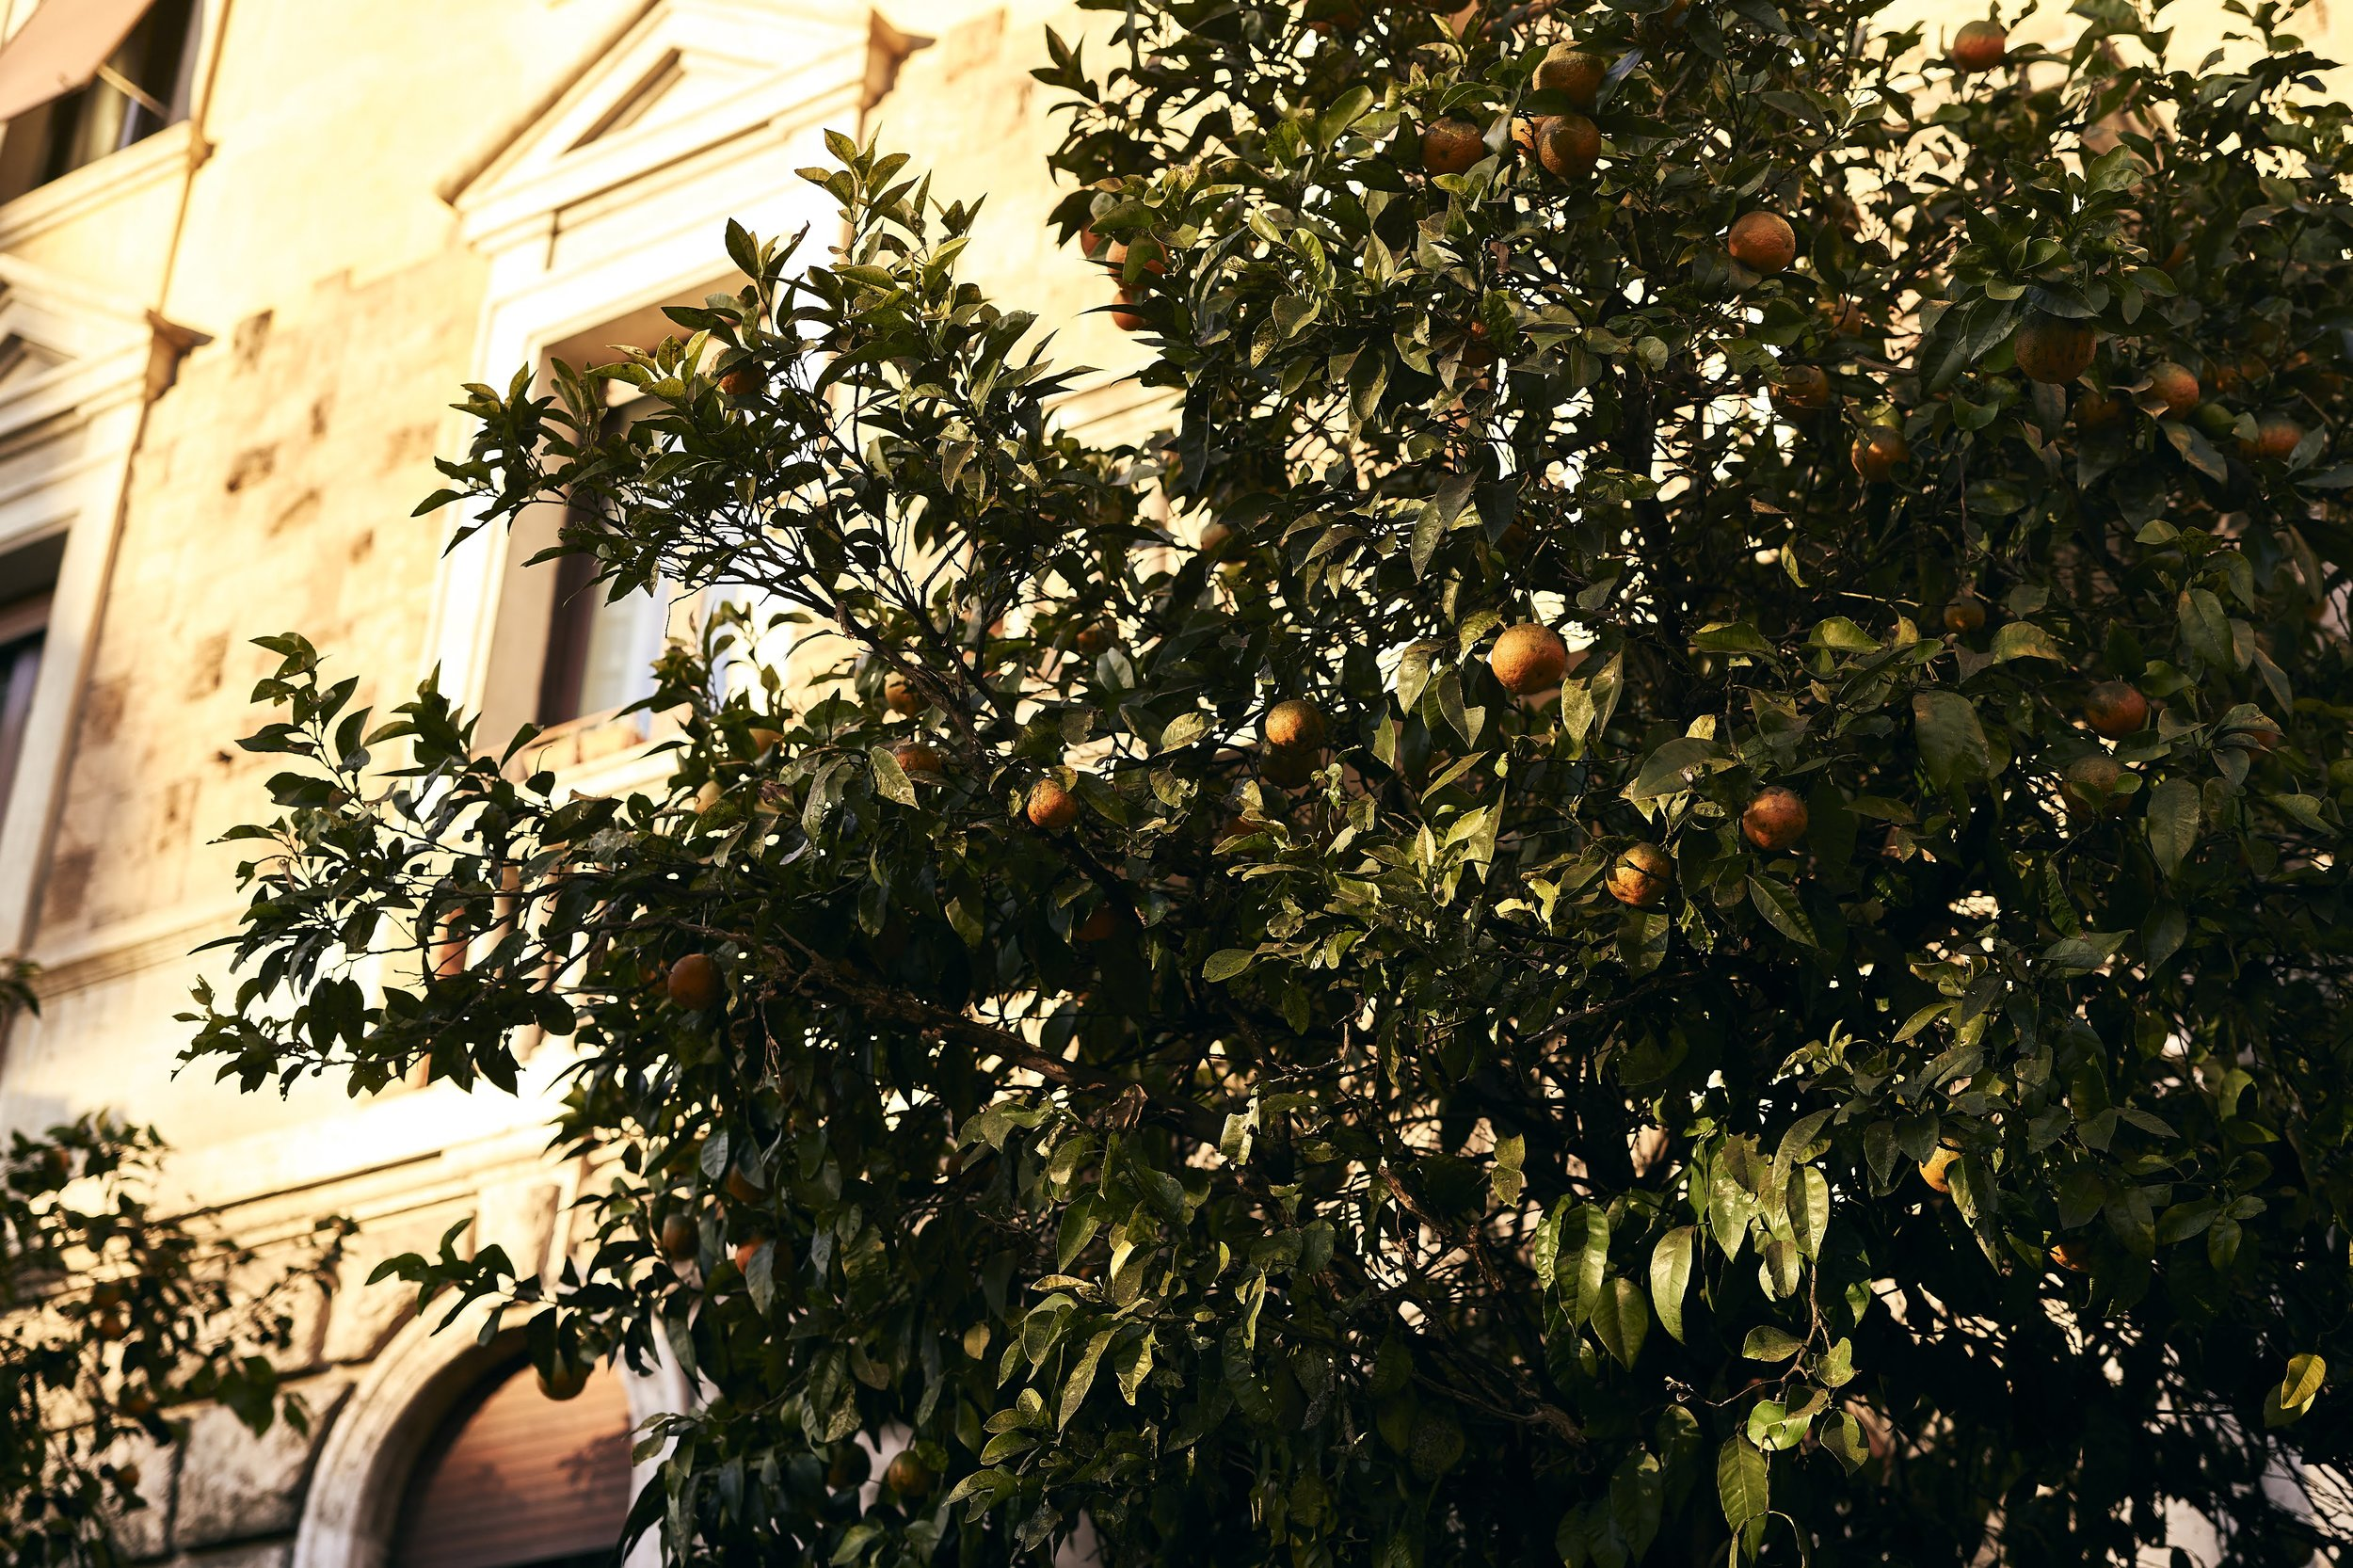 Orange trees in the city